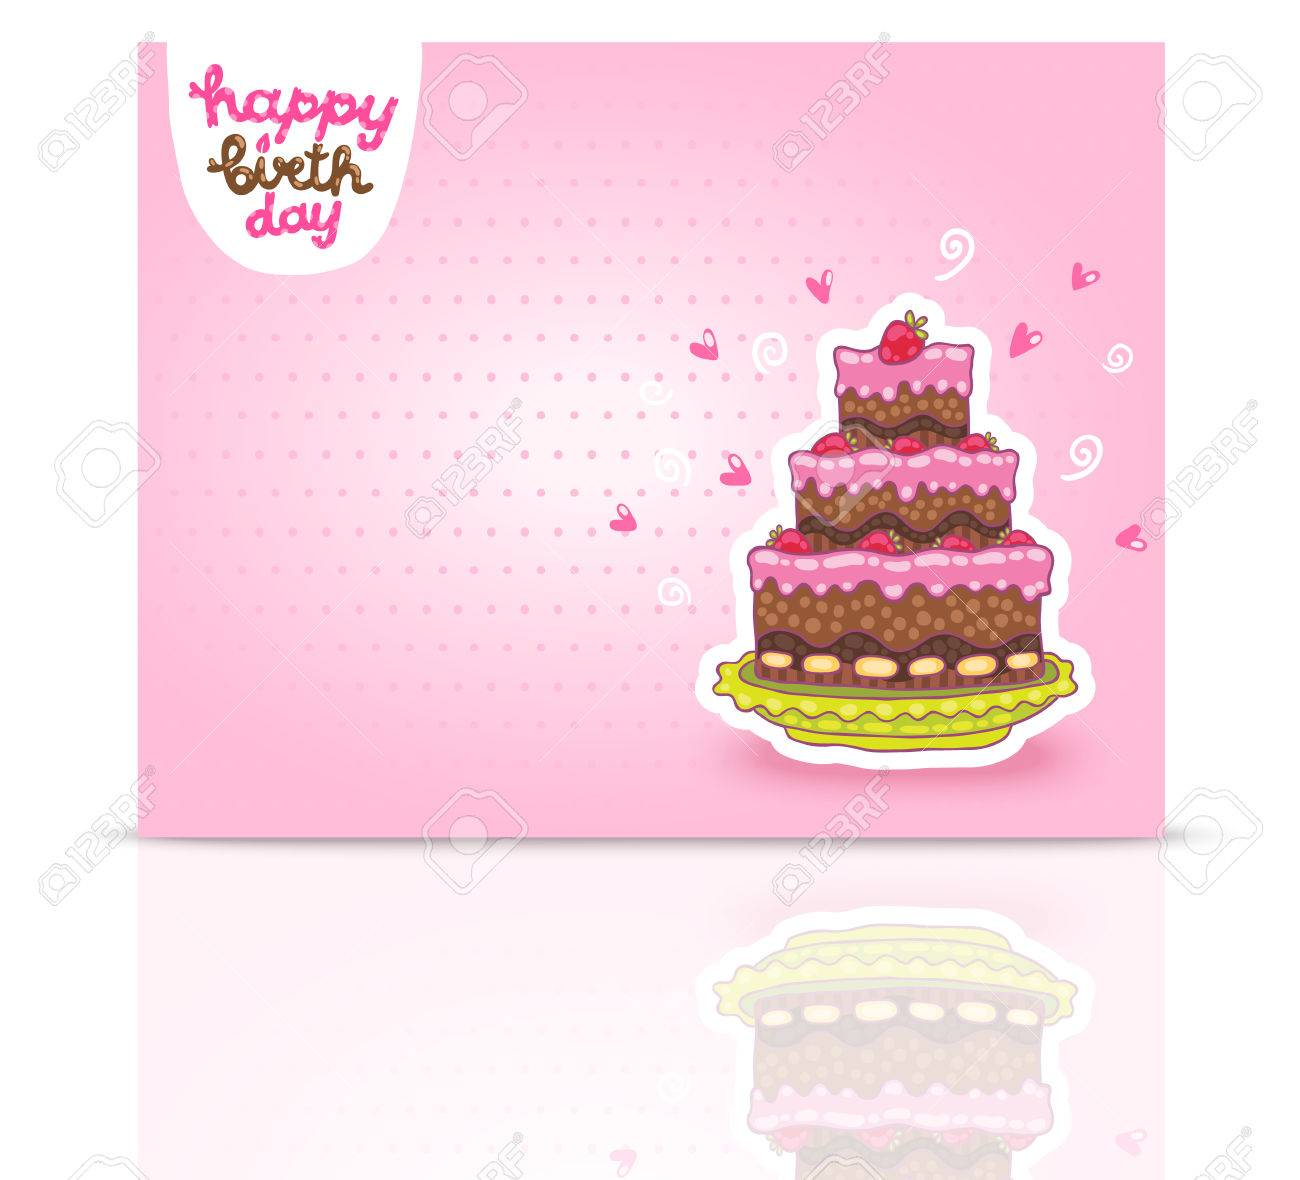 Amazing Happy Birthday Card Background With Cake. Vector Holiday Party Template  Stock Vector   27665454